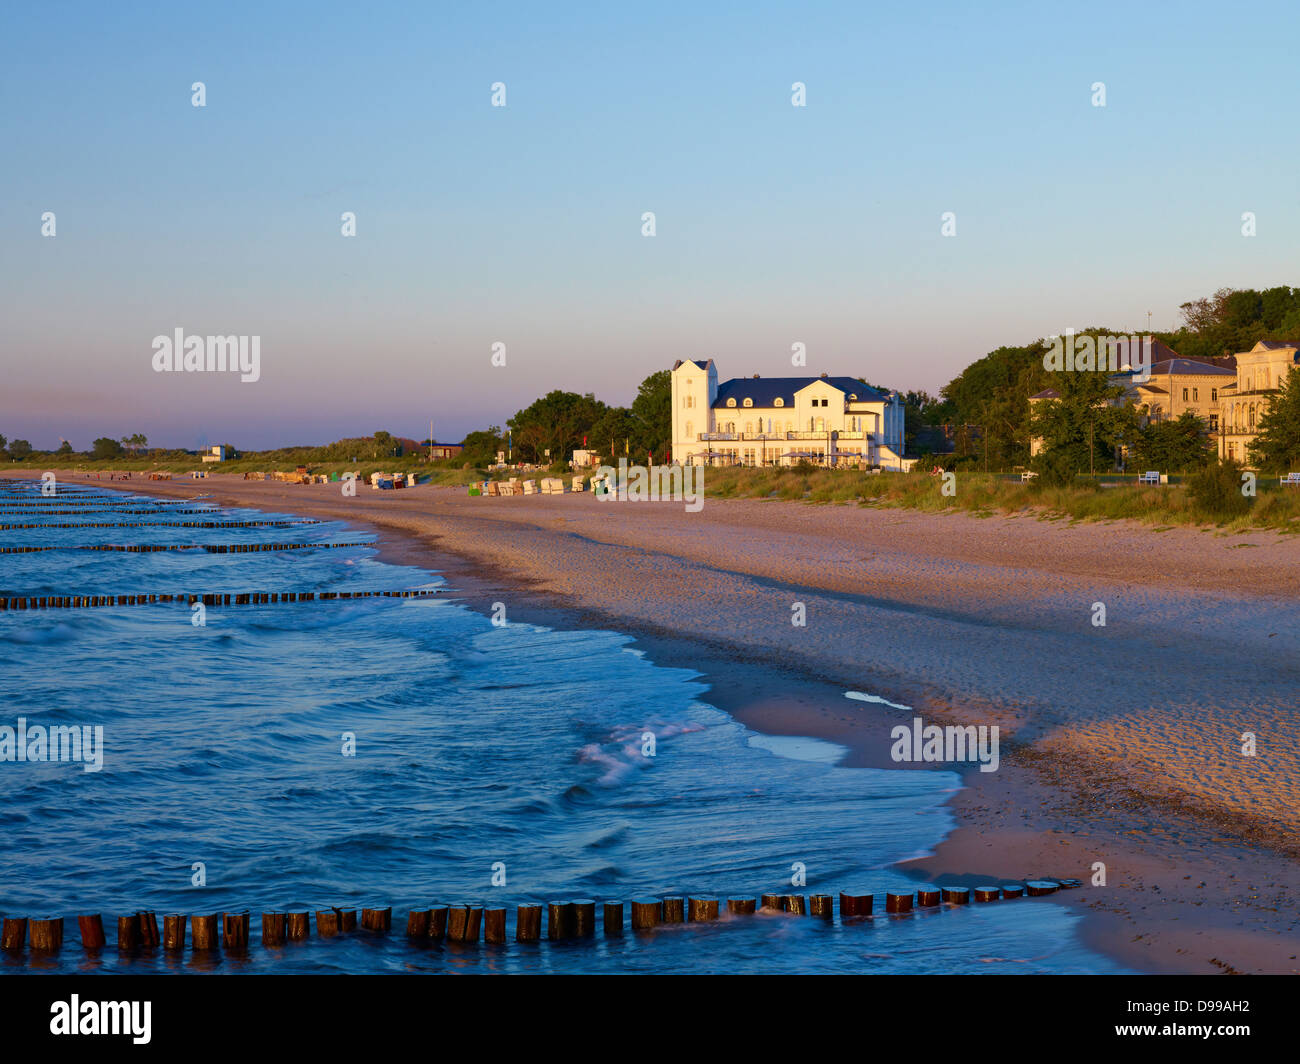 Beach, seaside resort of Heiligendamm, Mecklenburg-Western Pomerania, Germany - Stock Image